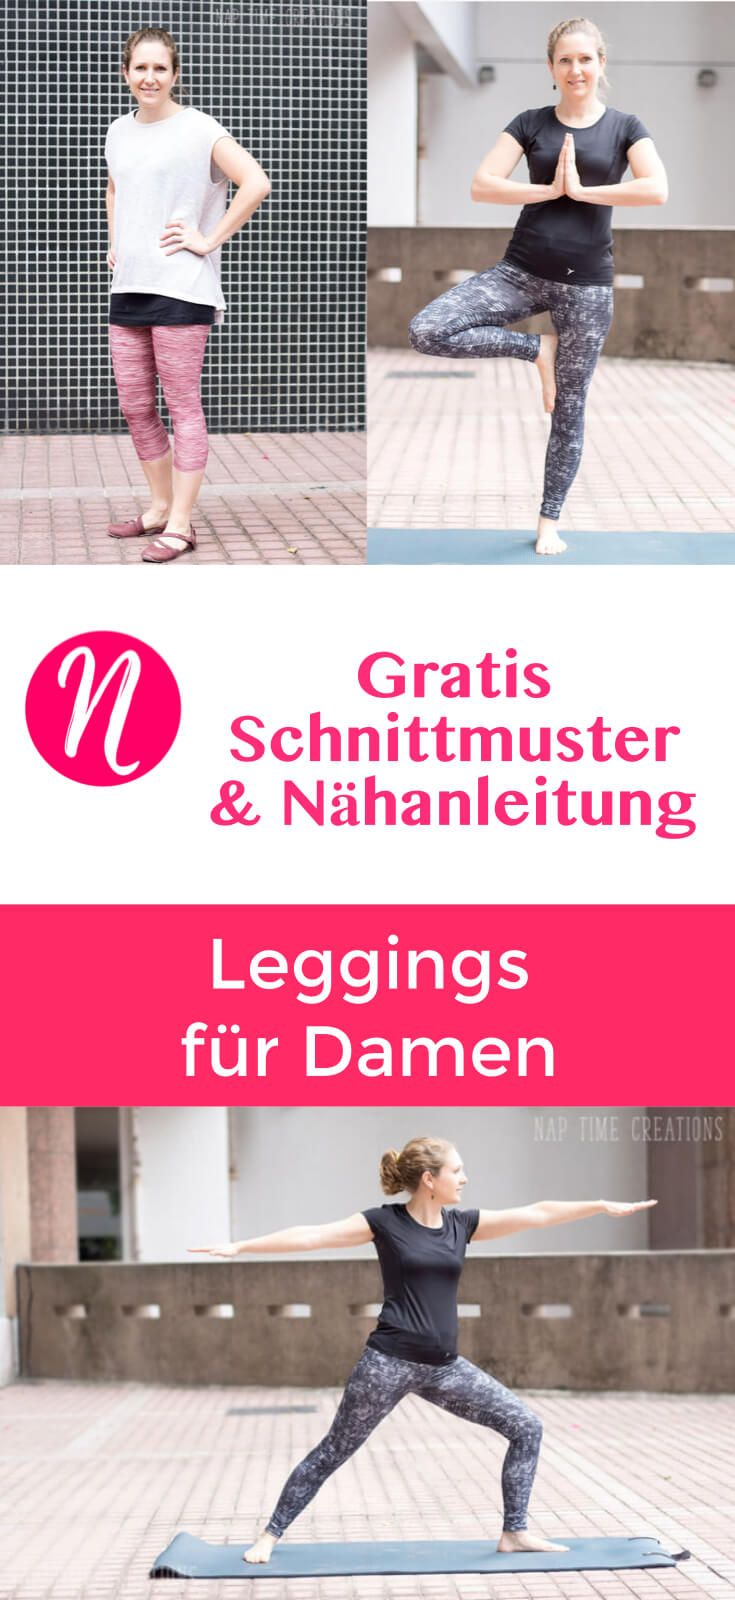 Freebook: Damen-Leggings - Kostenloses Schnittmuster & Nähanleitung ❤ XS - XXL ❤ Nähtalente - Magazin für kostenlose Schnittmuster ❤ Sew your own Leggings with this great free sewing pattern for woman. Size XS - XXL